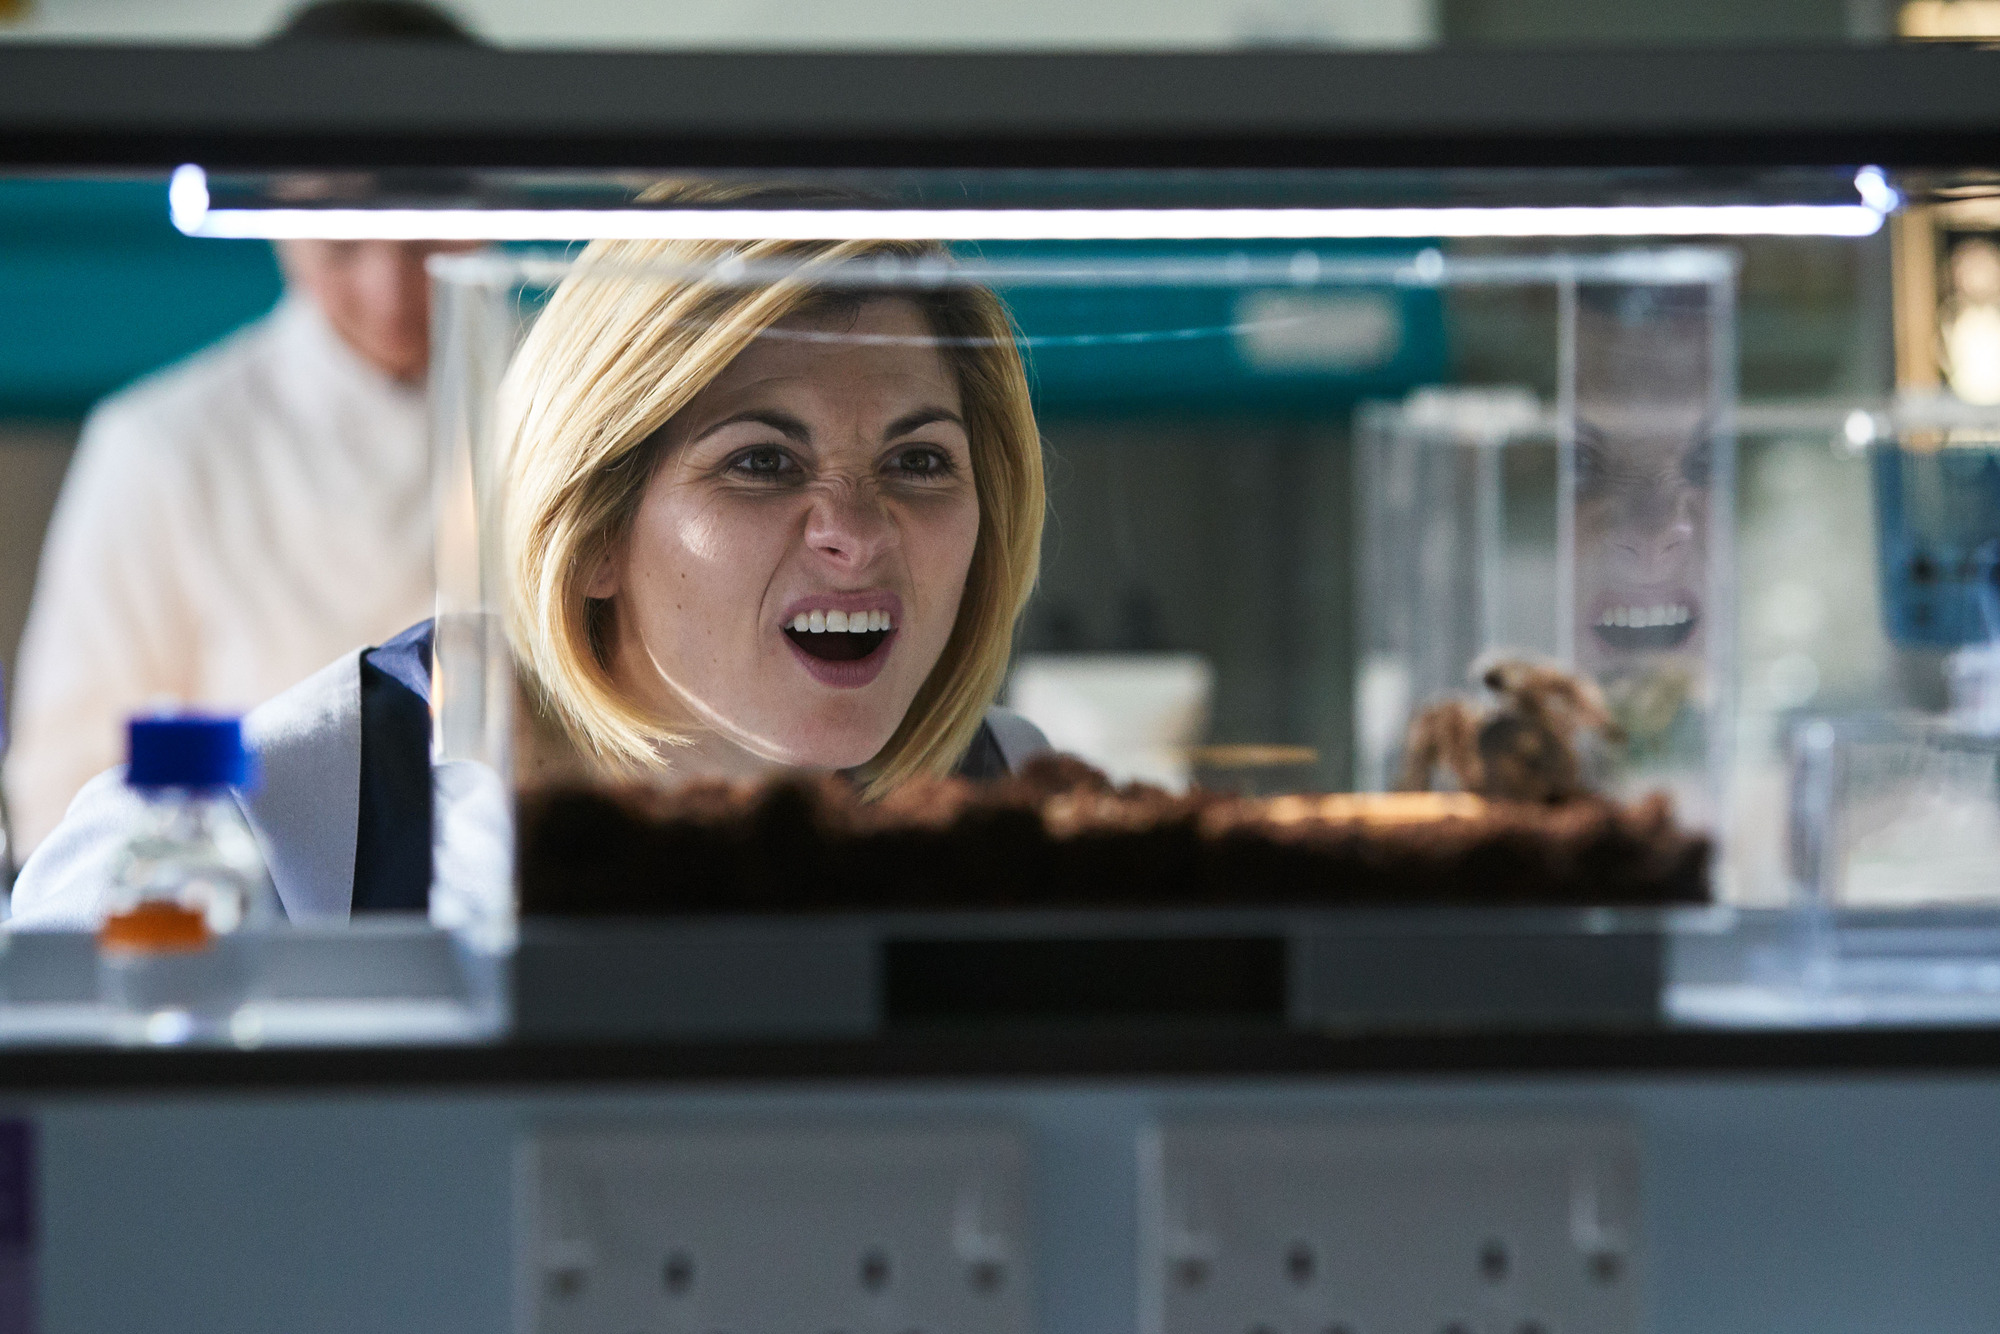 Arachnids In The UK: The Doctor (Jodie Whittaker) (Credit: BBC Studios (Simon Ridgeway))